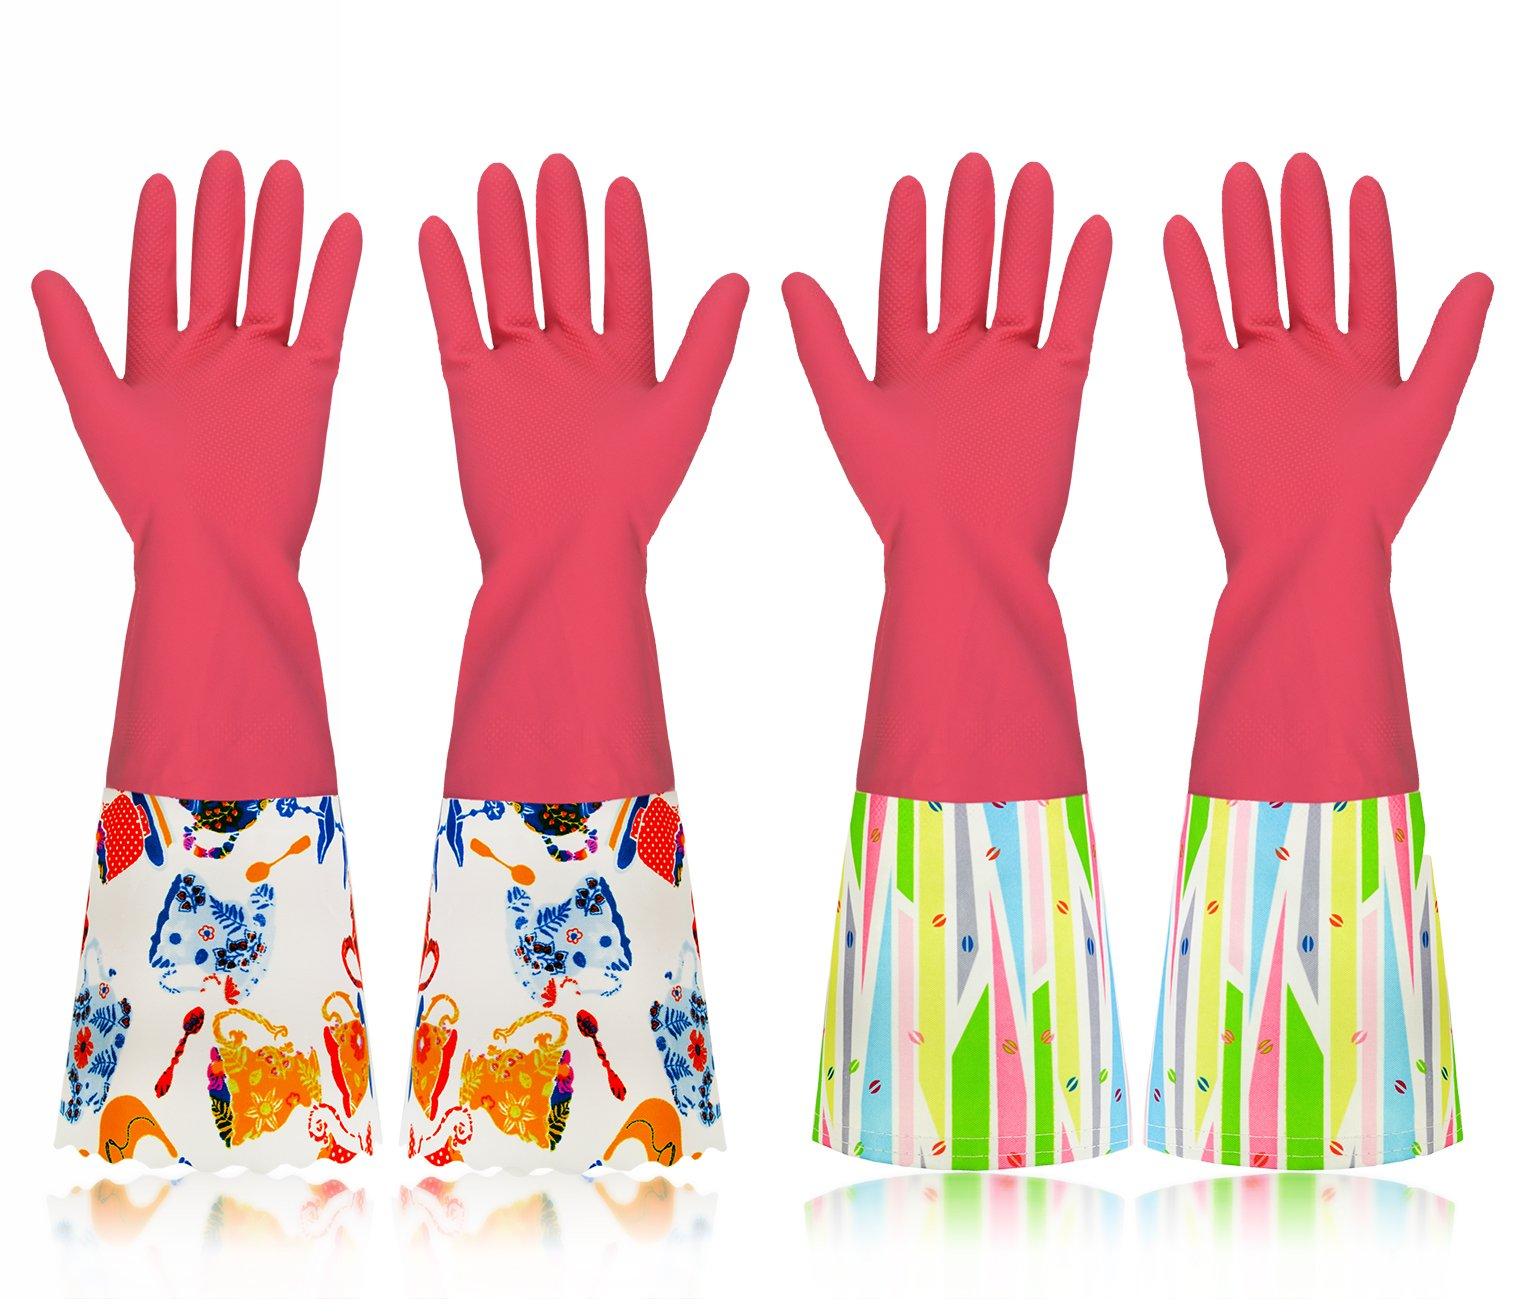 Household Cleaning Rubber Gloves with Cotton Lining, Long Natural Latex Dishwashing Gloves, Pink, 2 Pairs